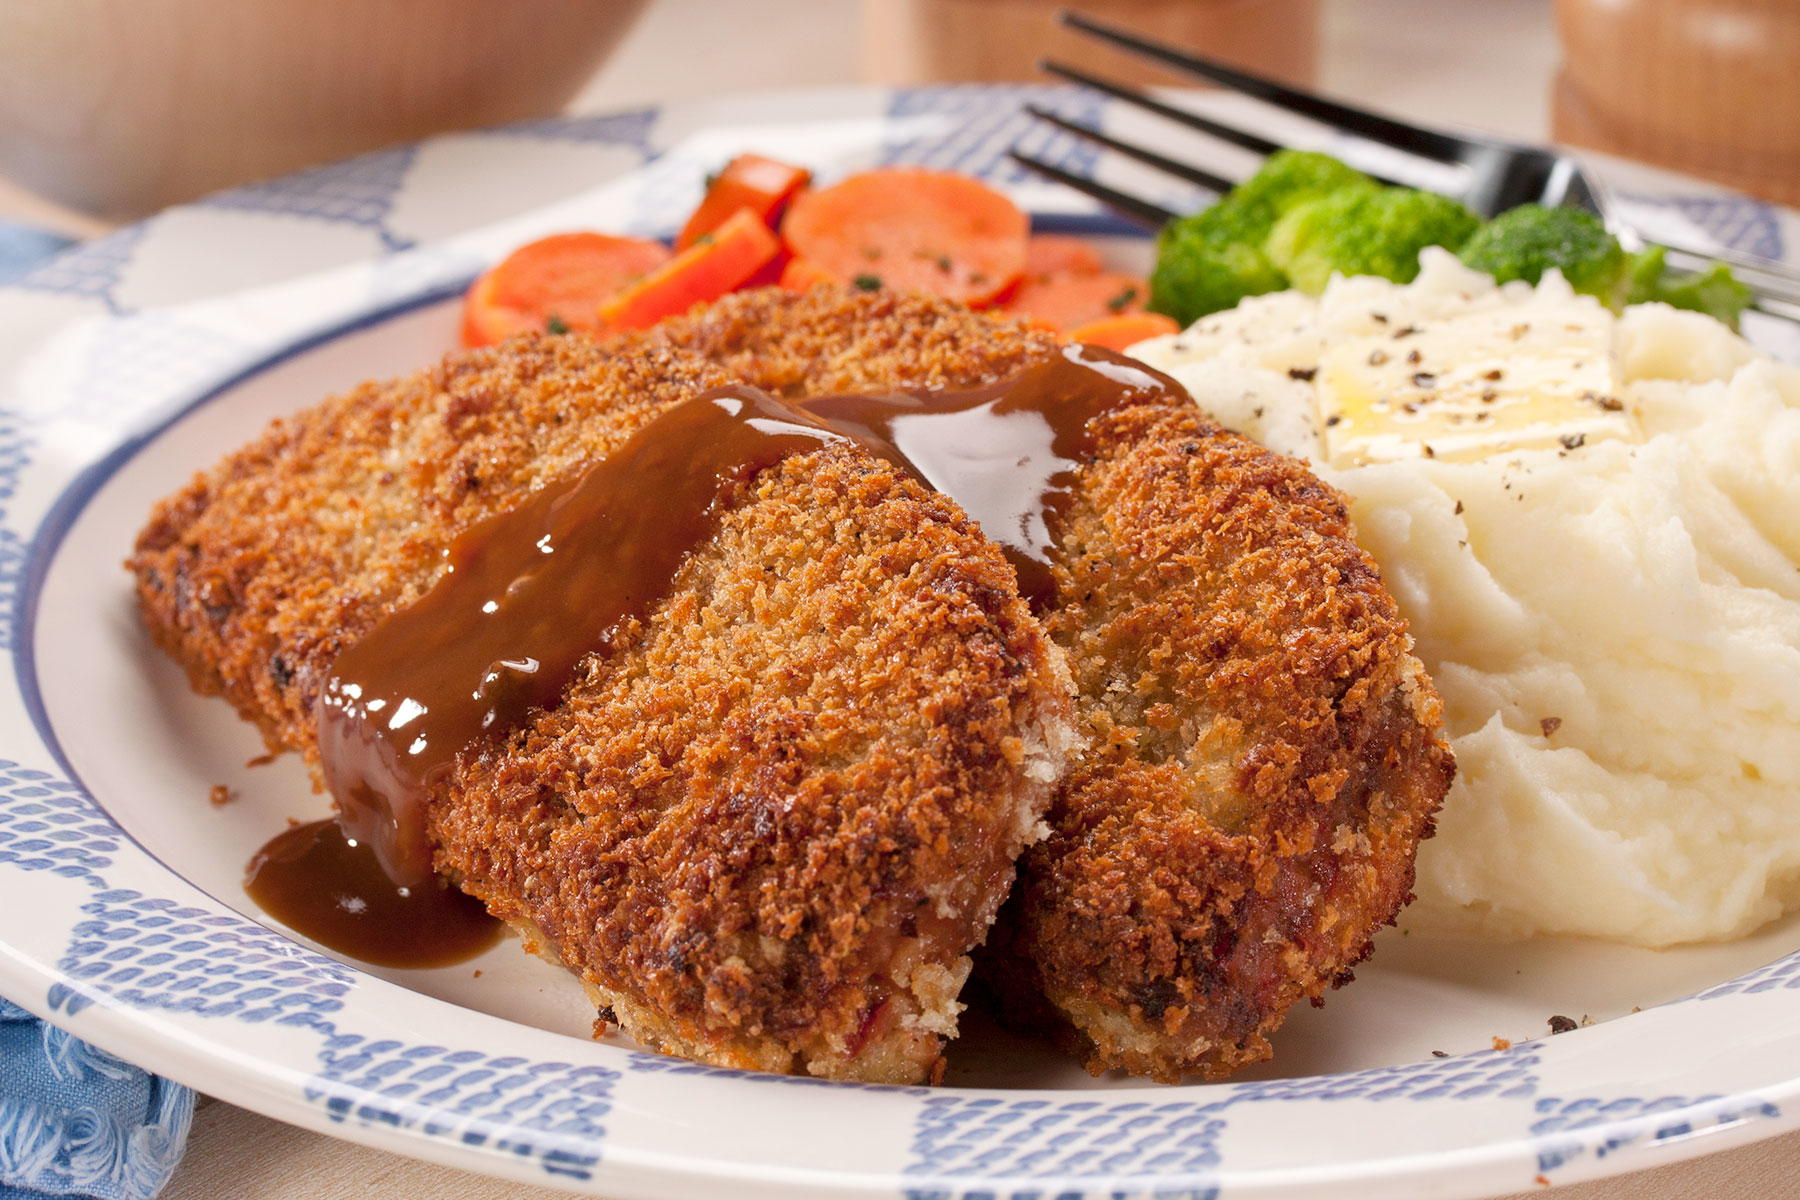 Crispy Fried Meatloaf Mrfood Com